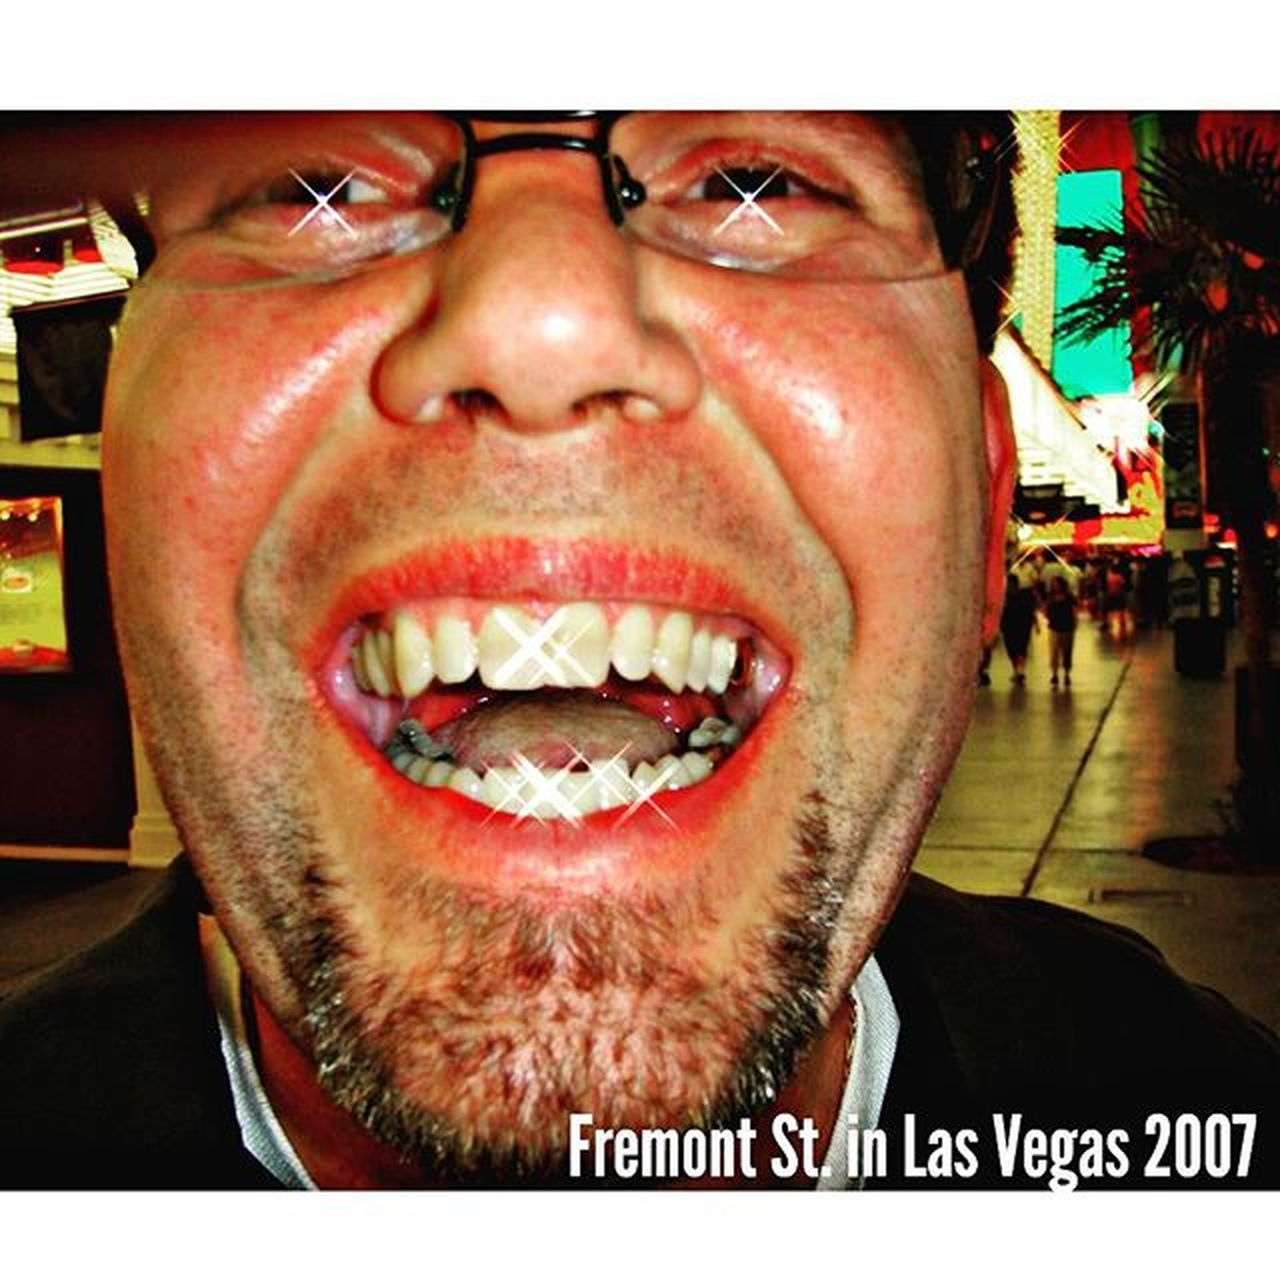 168 hrs. Till I'm back on FremontStreet in Lasvegas ....but who's counting?!? Goldenspookytooth ...no seriously....look on the right side in the back I got 1 golden tooth on the top & bottom....doesnt everybody?!? Noguts NoGlory NOLEGEND Nostory Mannersamust Goodlooksokgreat Humorohhellyeah Almostfamoustour73 Really Insane Whiskeymakesmefriskey Dreamon